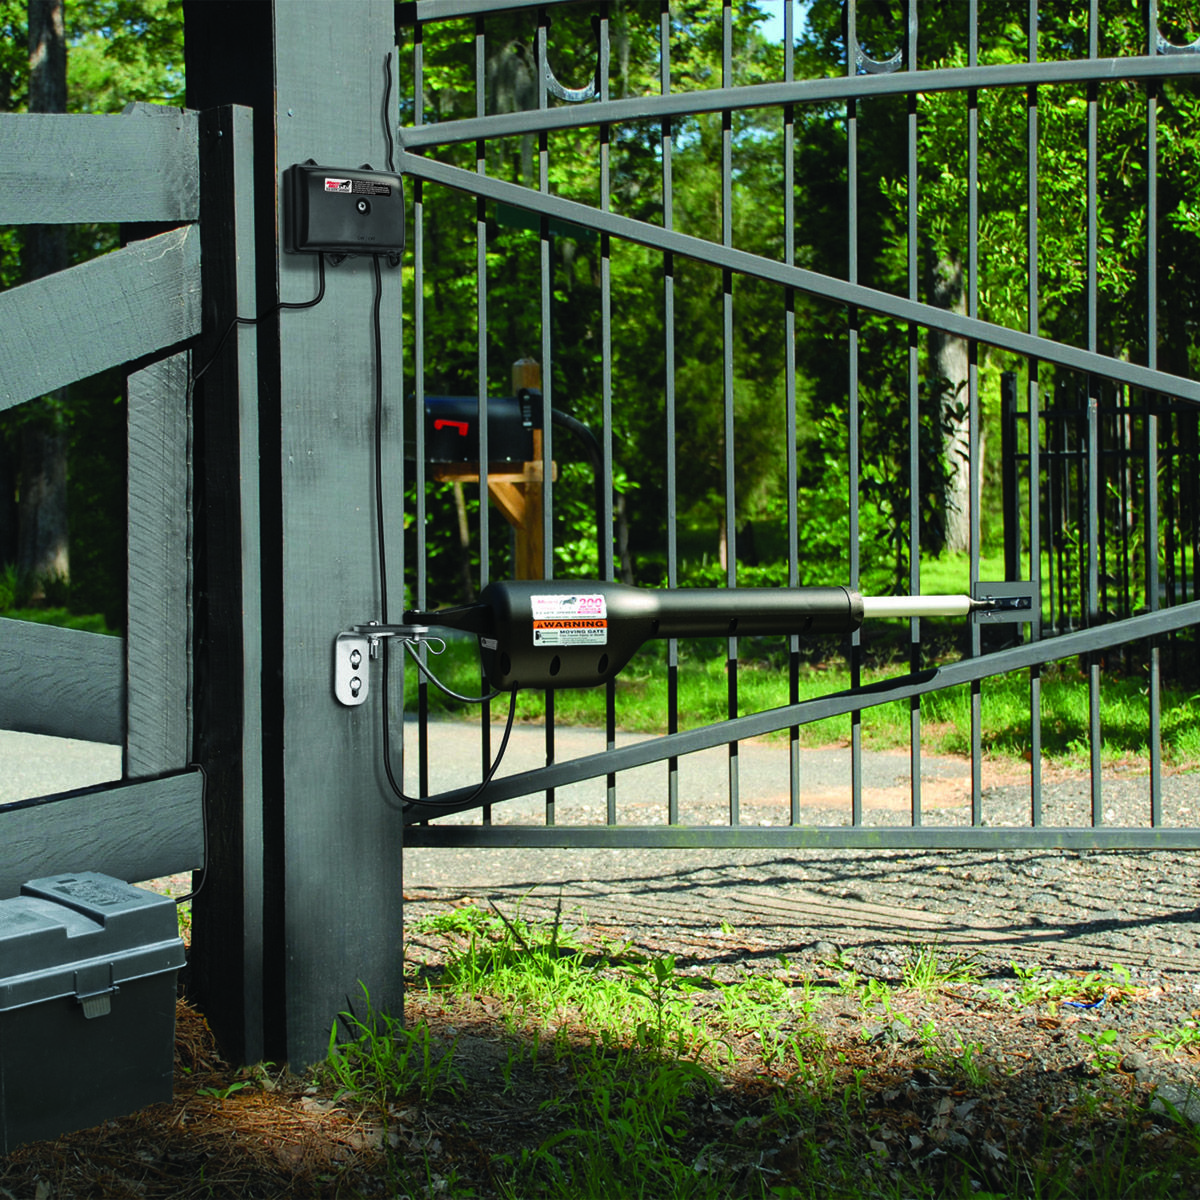 Reviewing the Mighty Mule FM200 Gate Opener